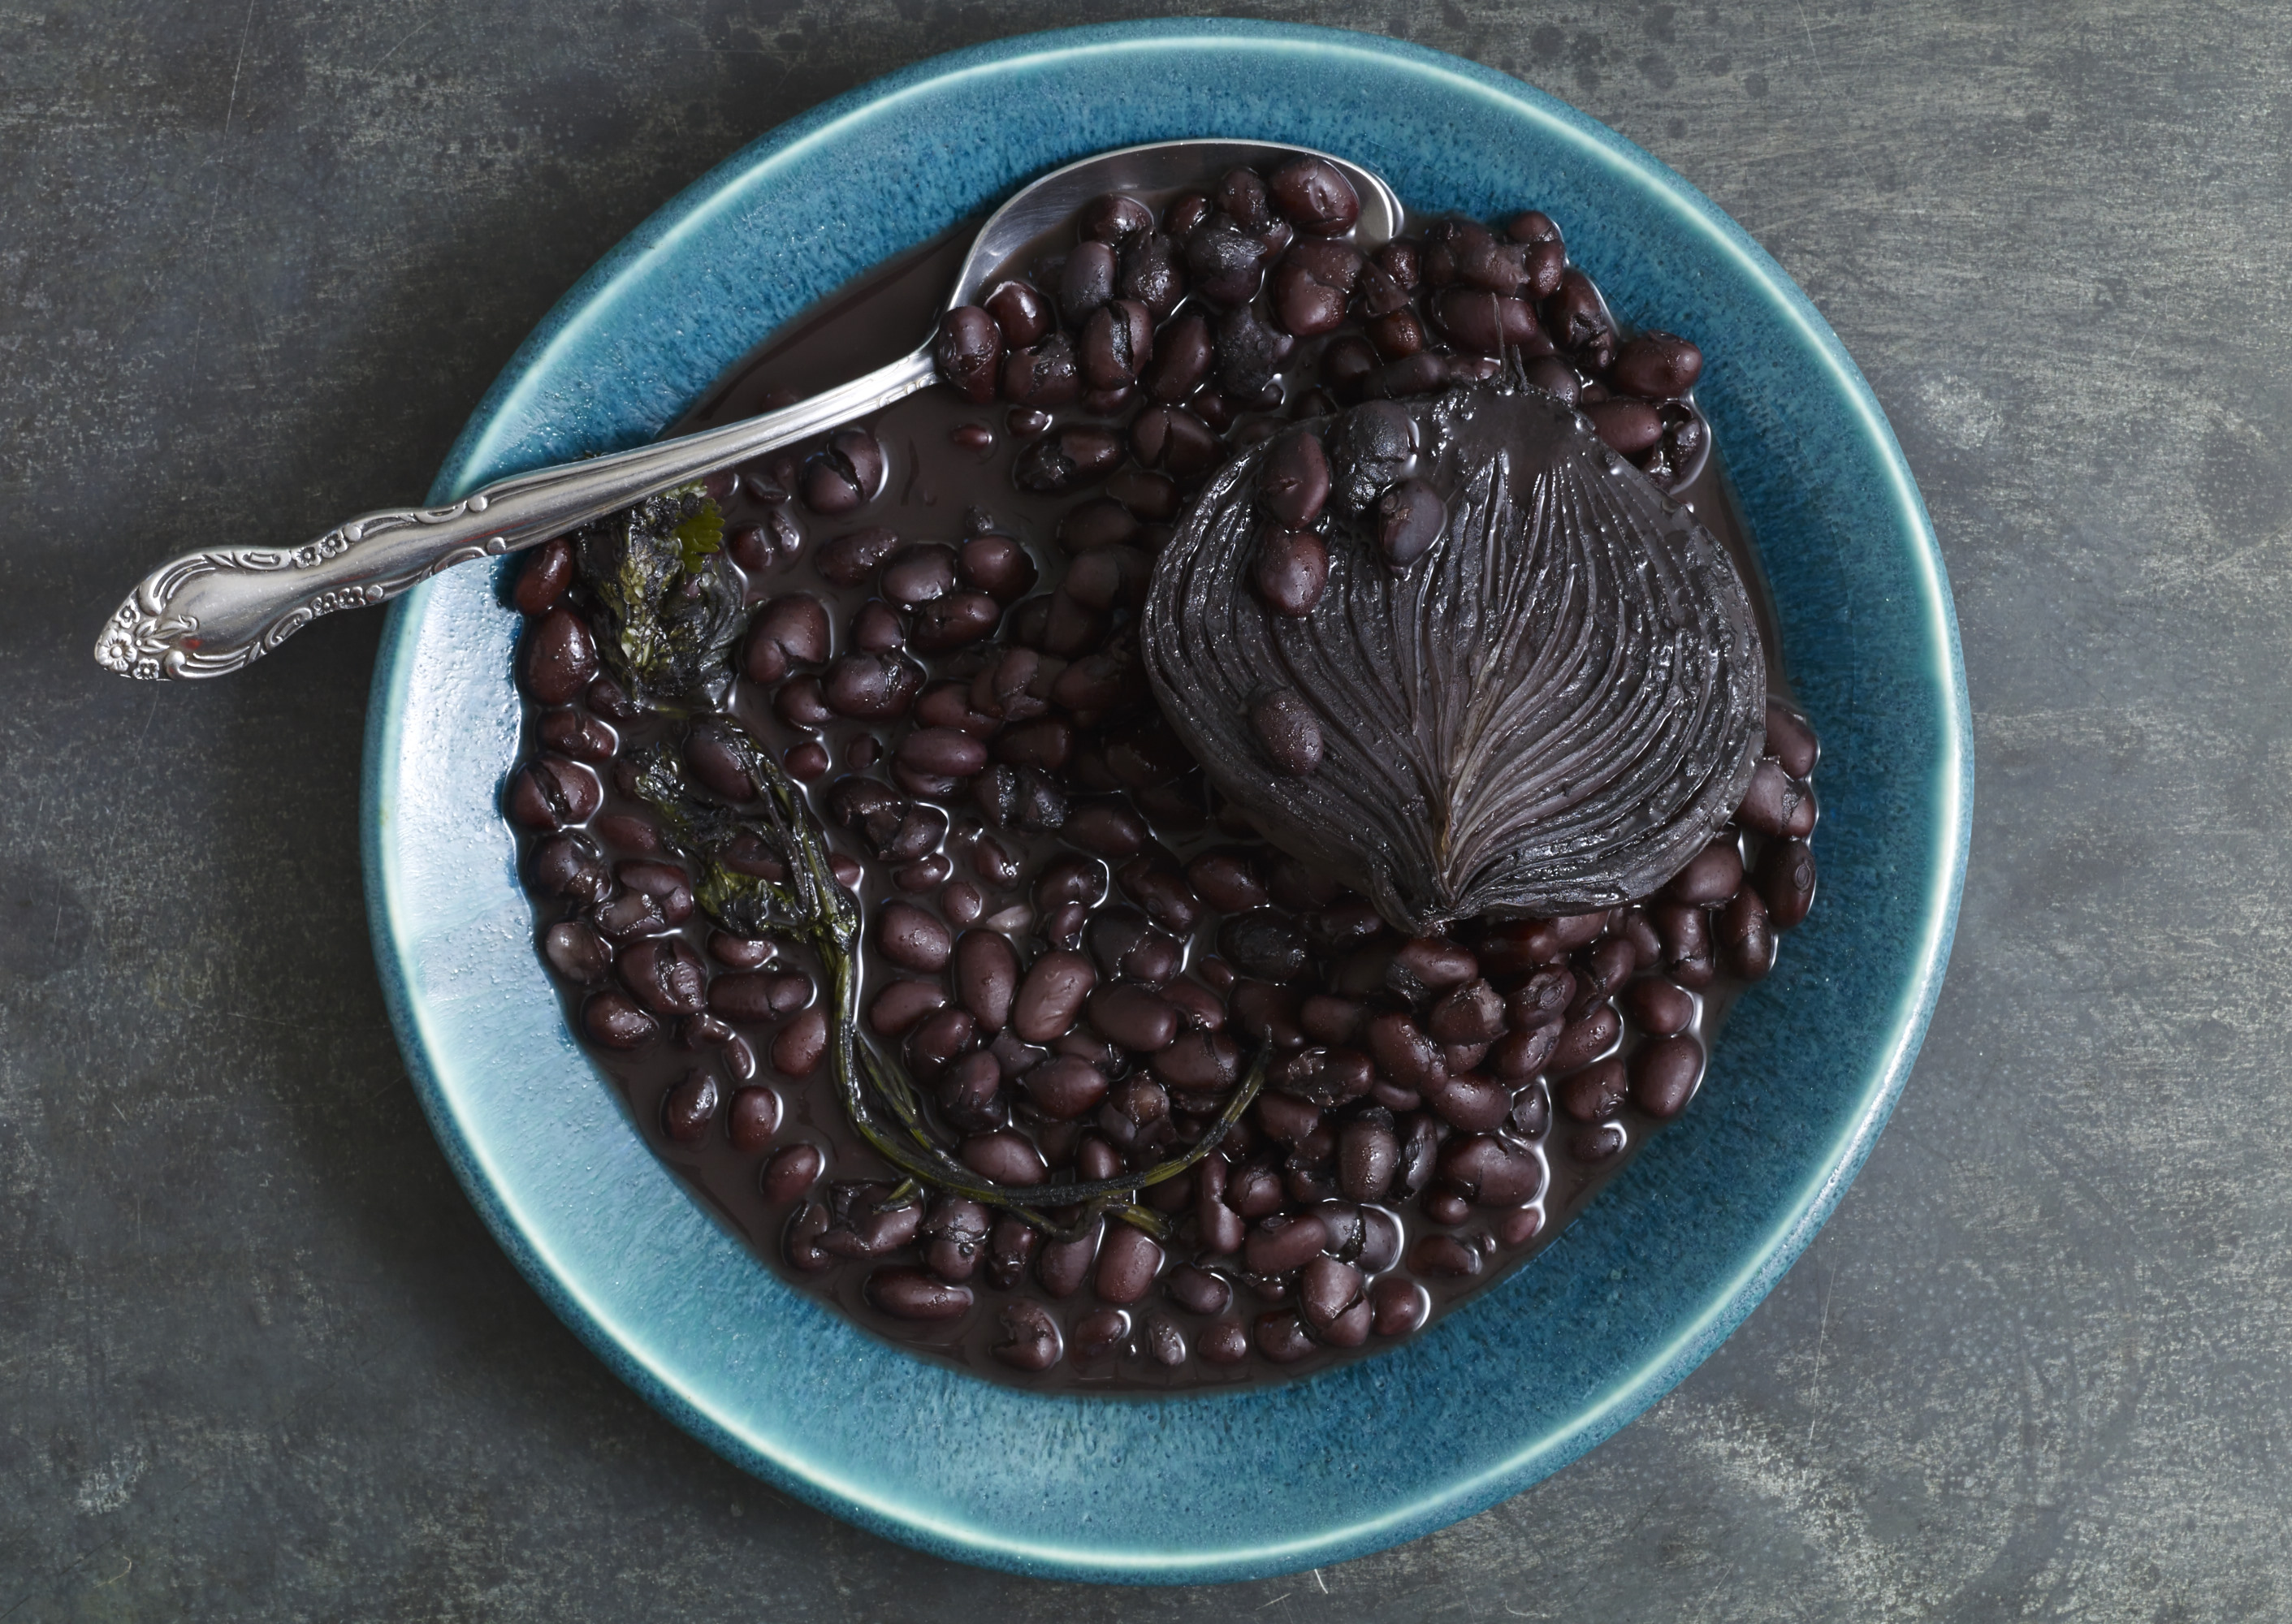 Pati Jinich's Black Beans from the Pot